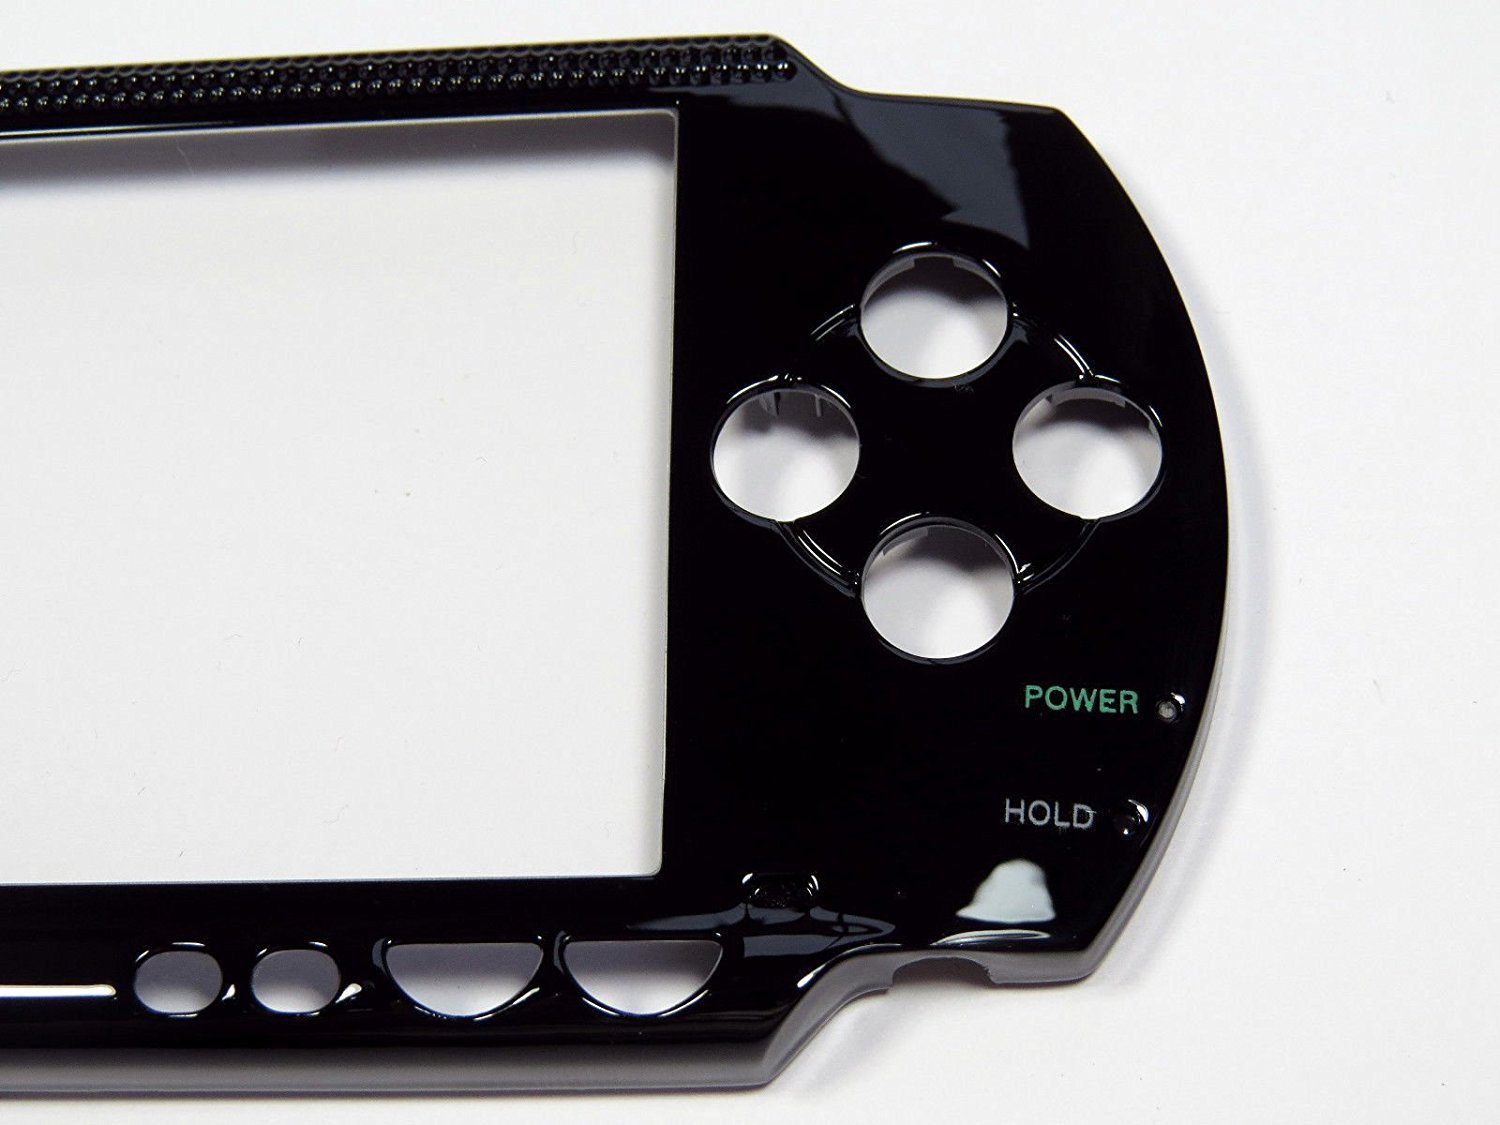 Gametown New Repair Faceplate Front Plate Case Cover Shell Part for Sony PSP 1000 1001 Black